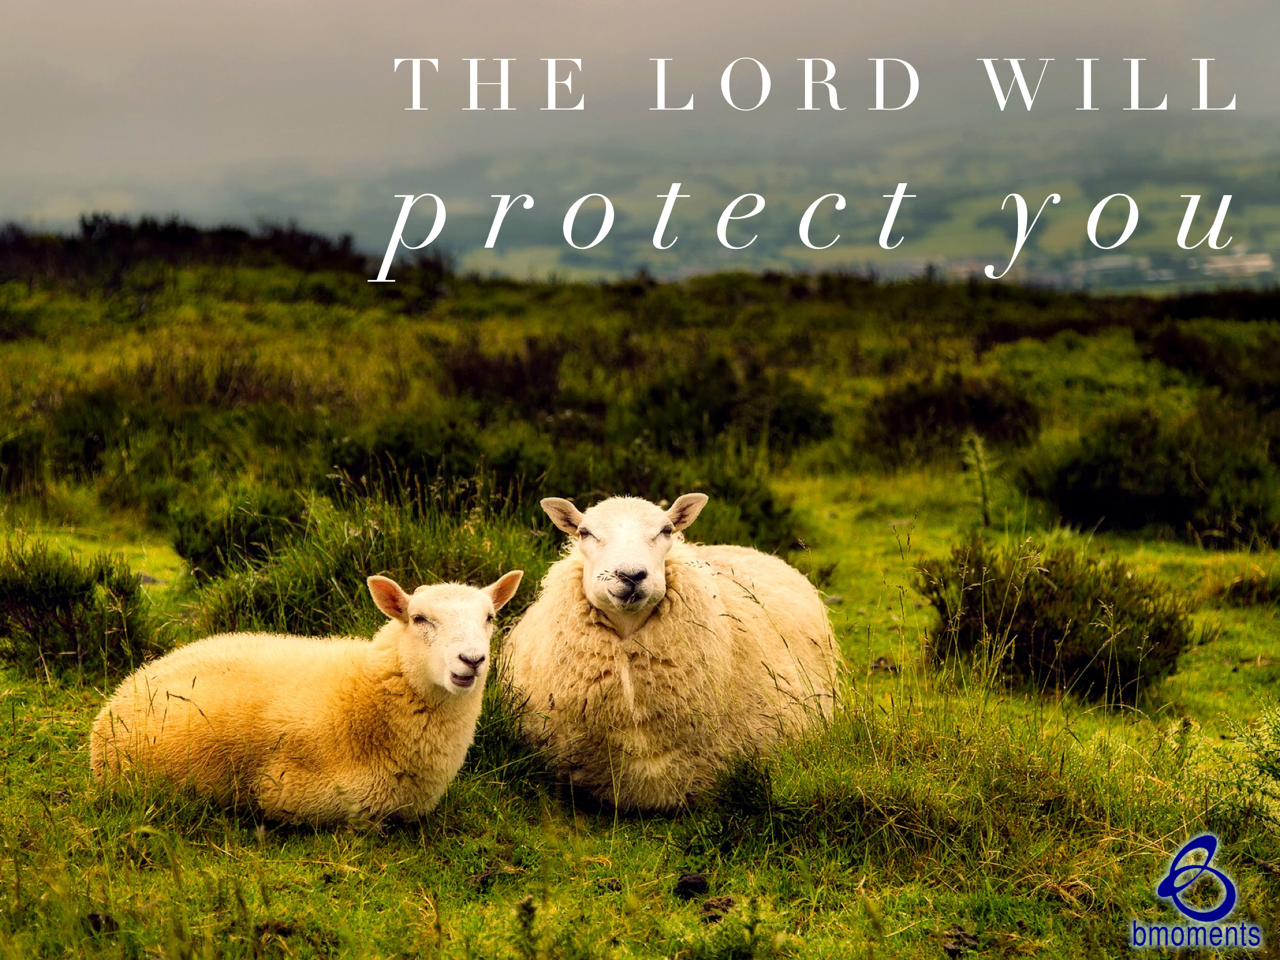 Know that Christ Is Your Shepherd